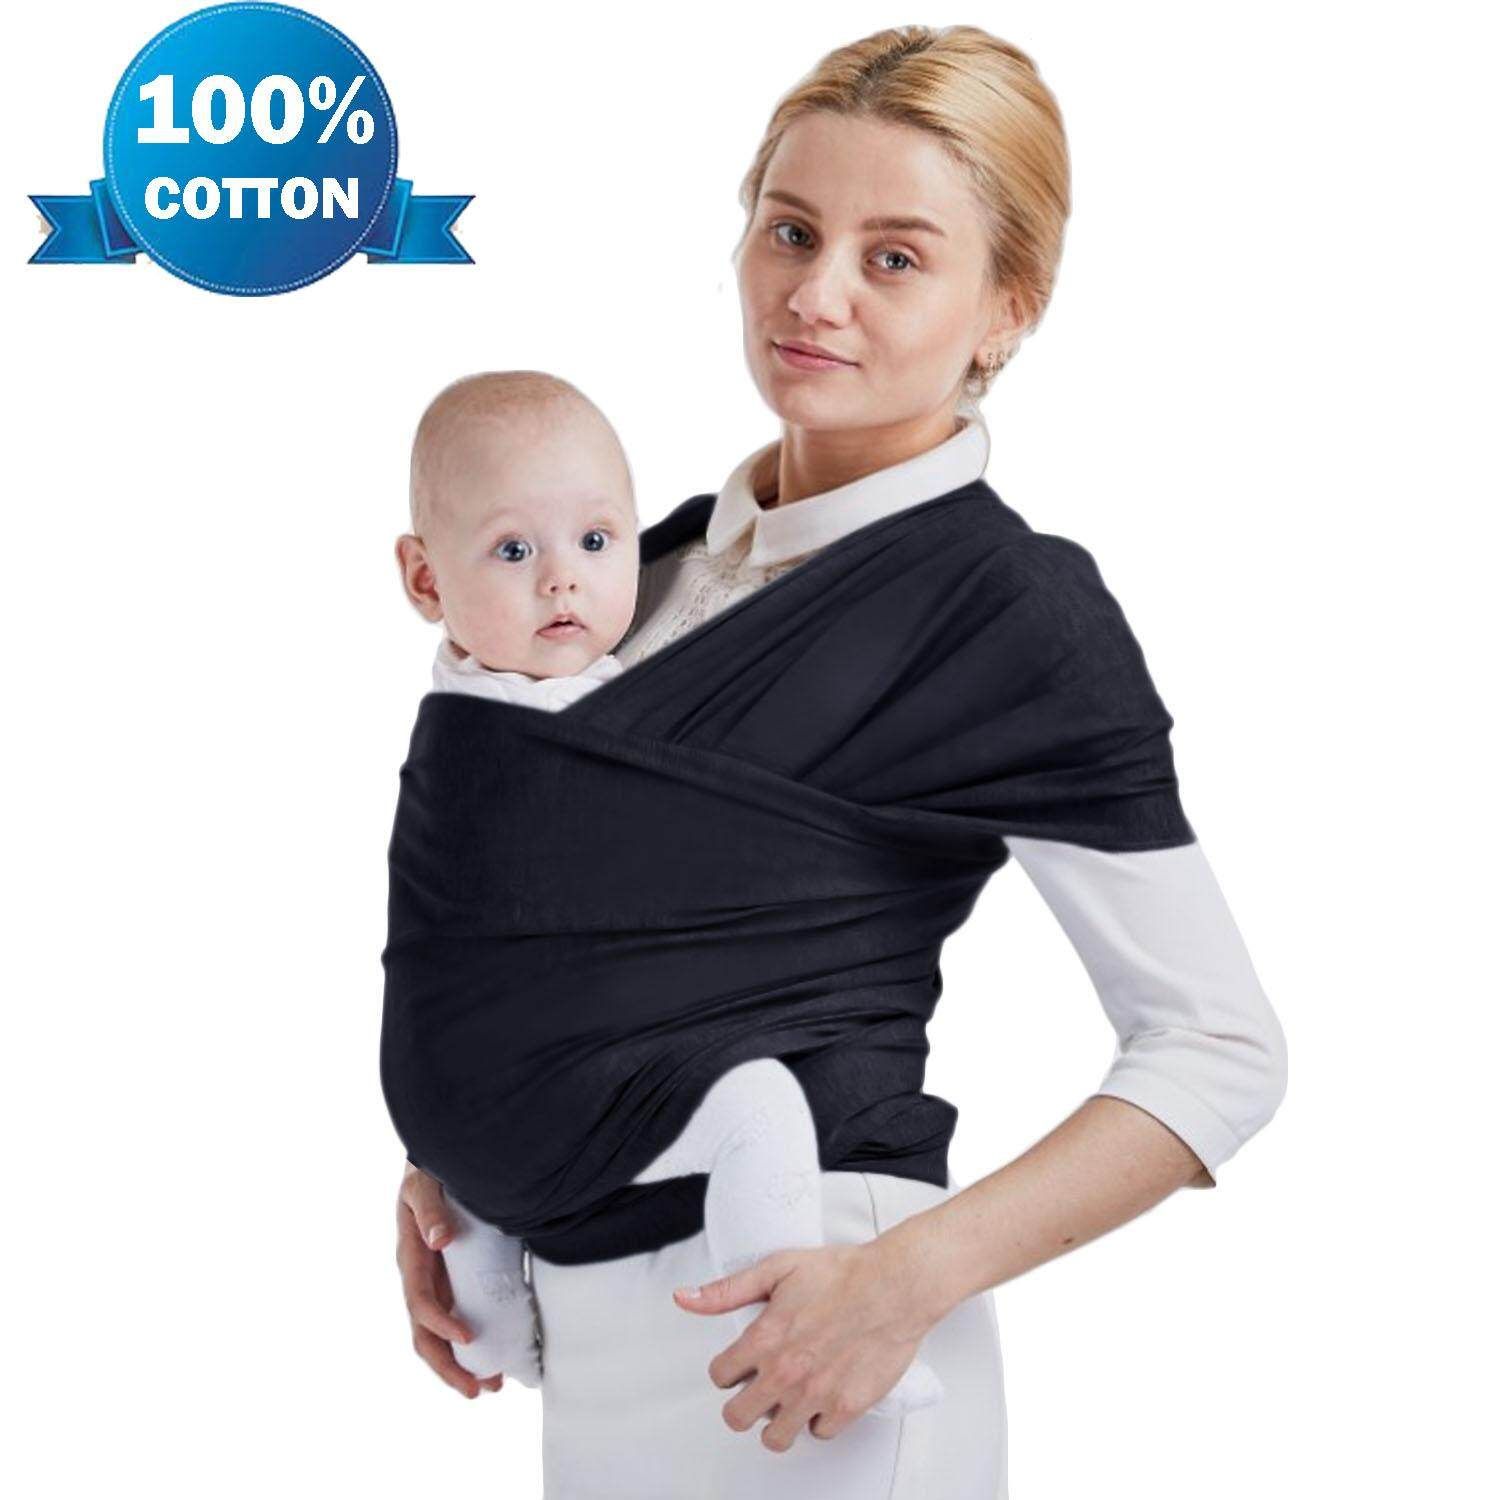 d3189763e00 China. Soft Cotton Adjustable Baby Sling Wrap Cover Carrier For Infants Up  To 20kg Black